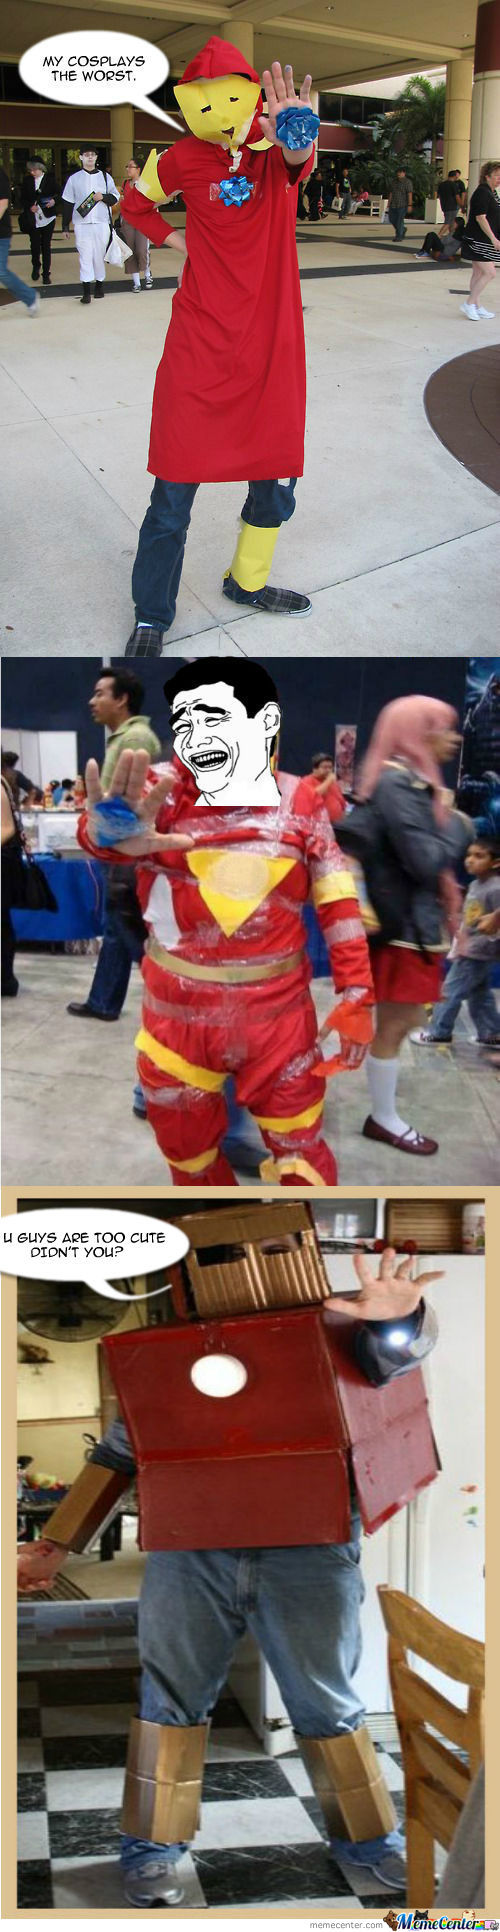 [RMX] [RMX] Greatest Iron Man Cosplay Ever